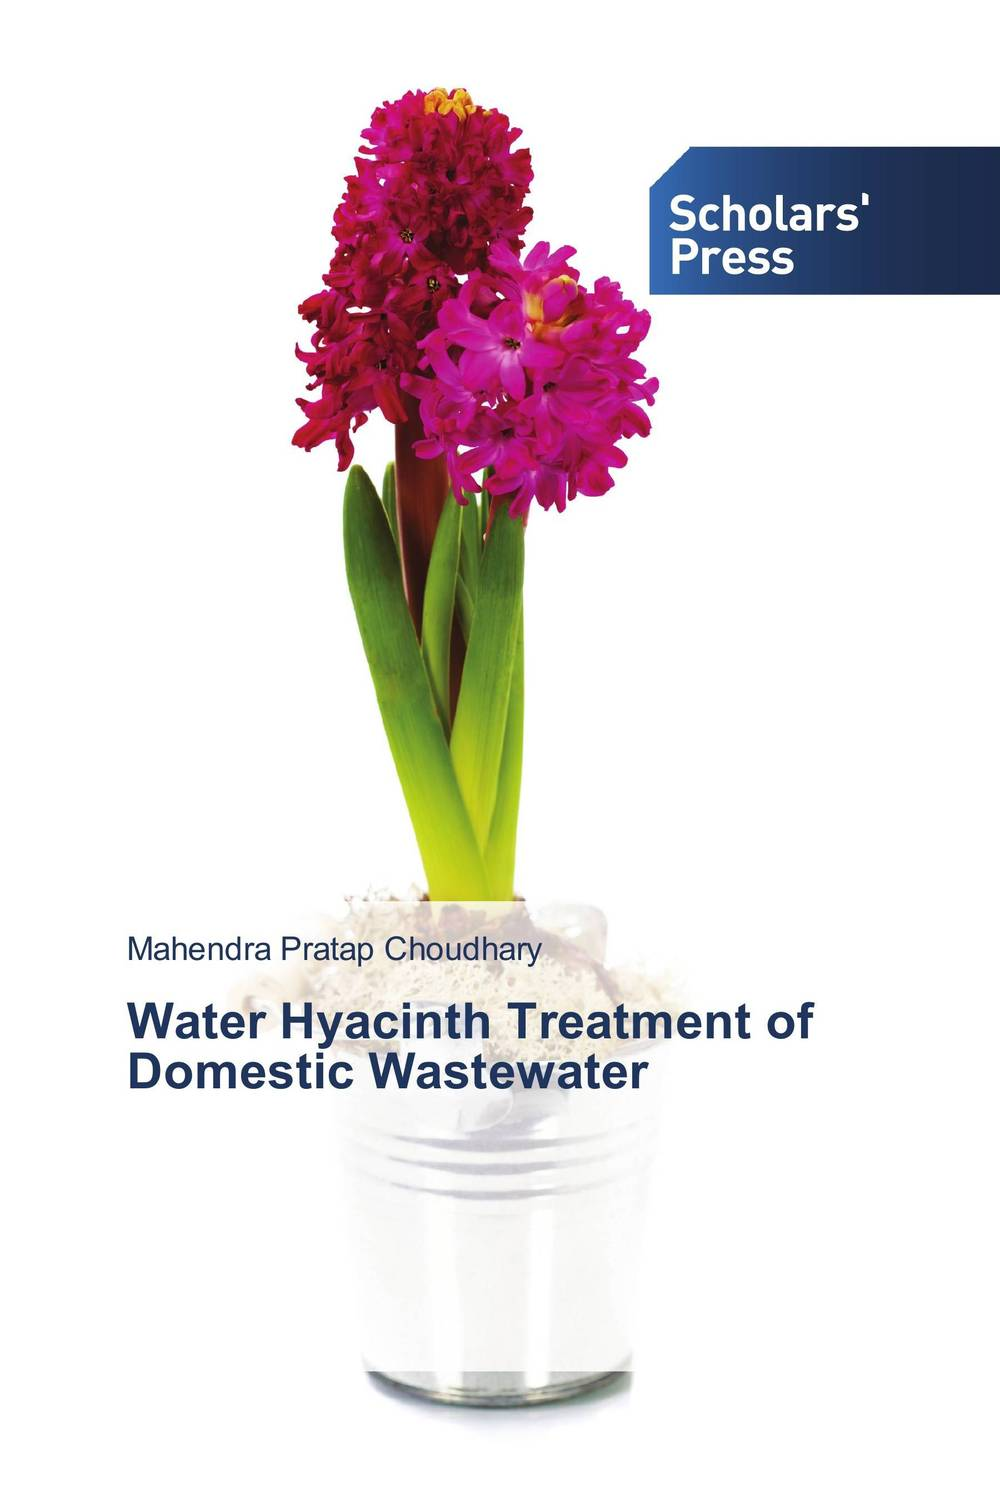 Water Hyacinth Treatment of Domestic Wastewater how to get rid of mans prostatitis then select the prostate massager treatment instrument